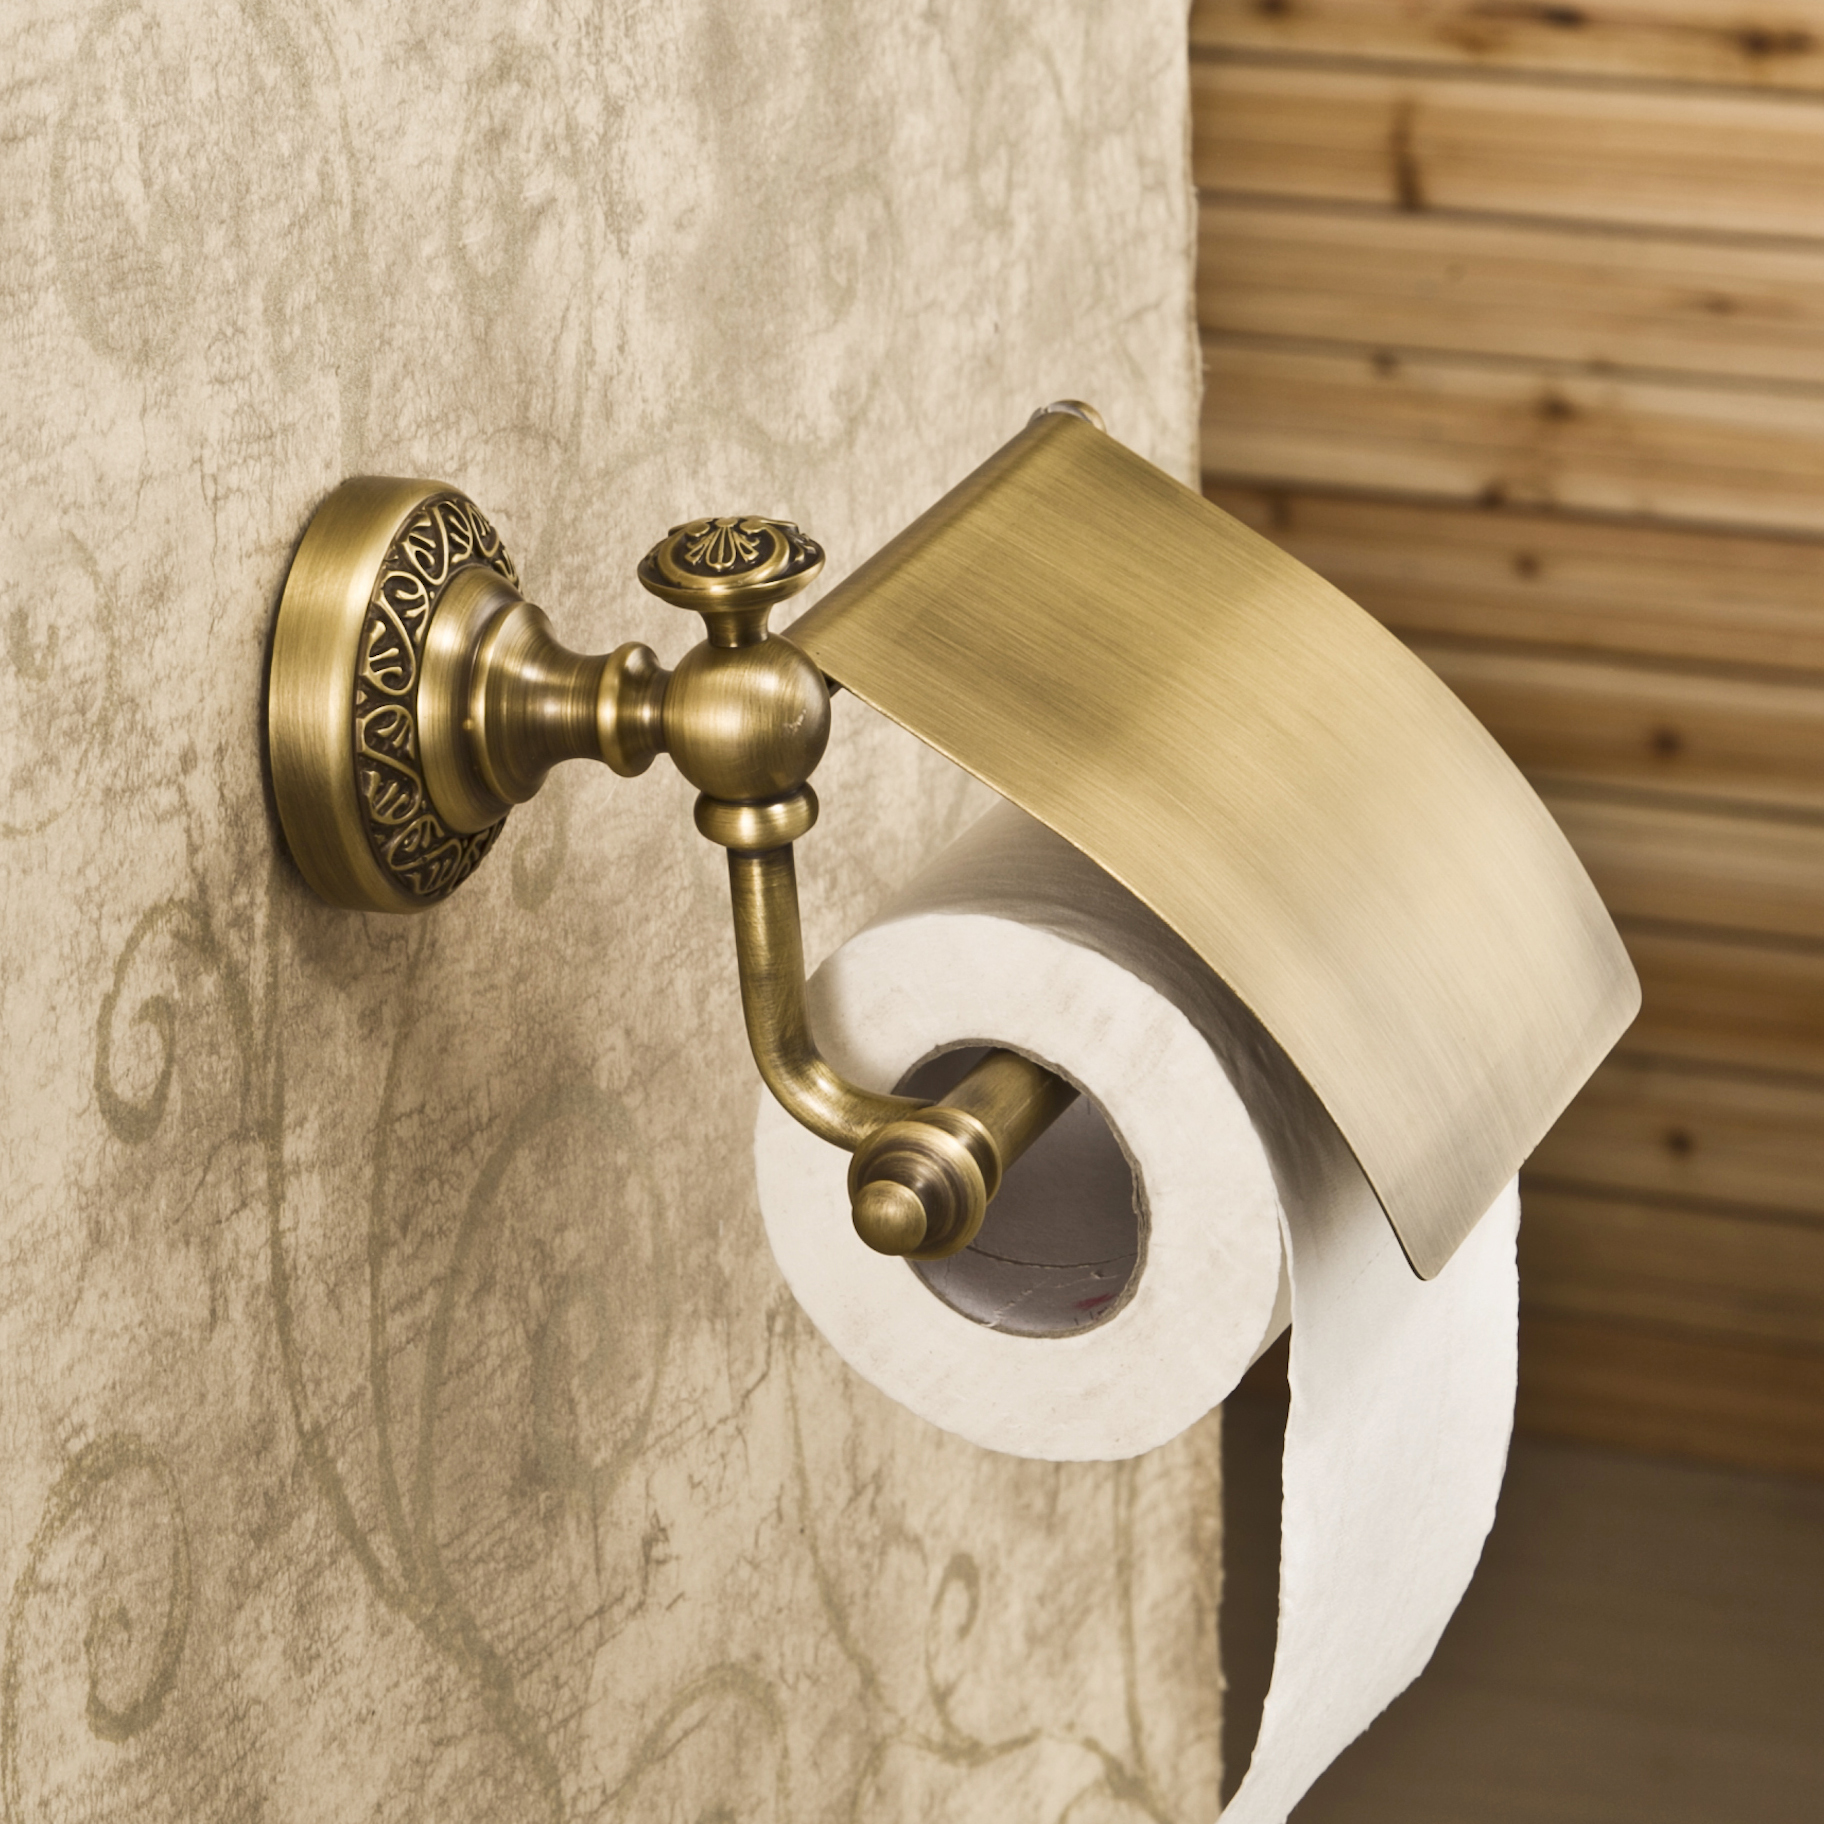 Wall Mounted Antique Copper Toilet Paper Holder With Cover Bathroom Holder <br><br>Aliexpress